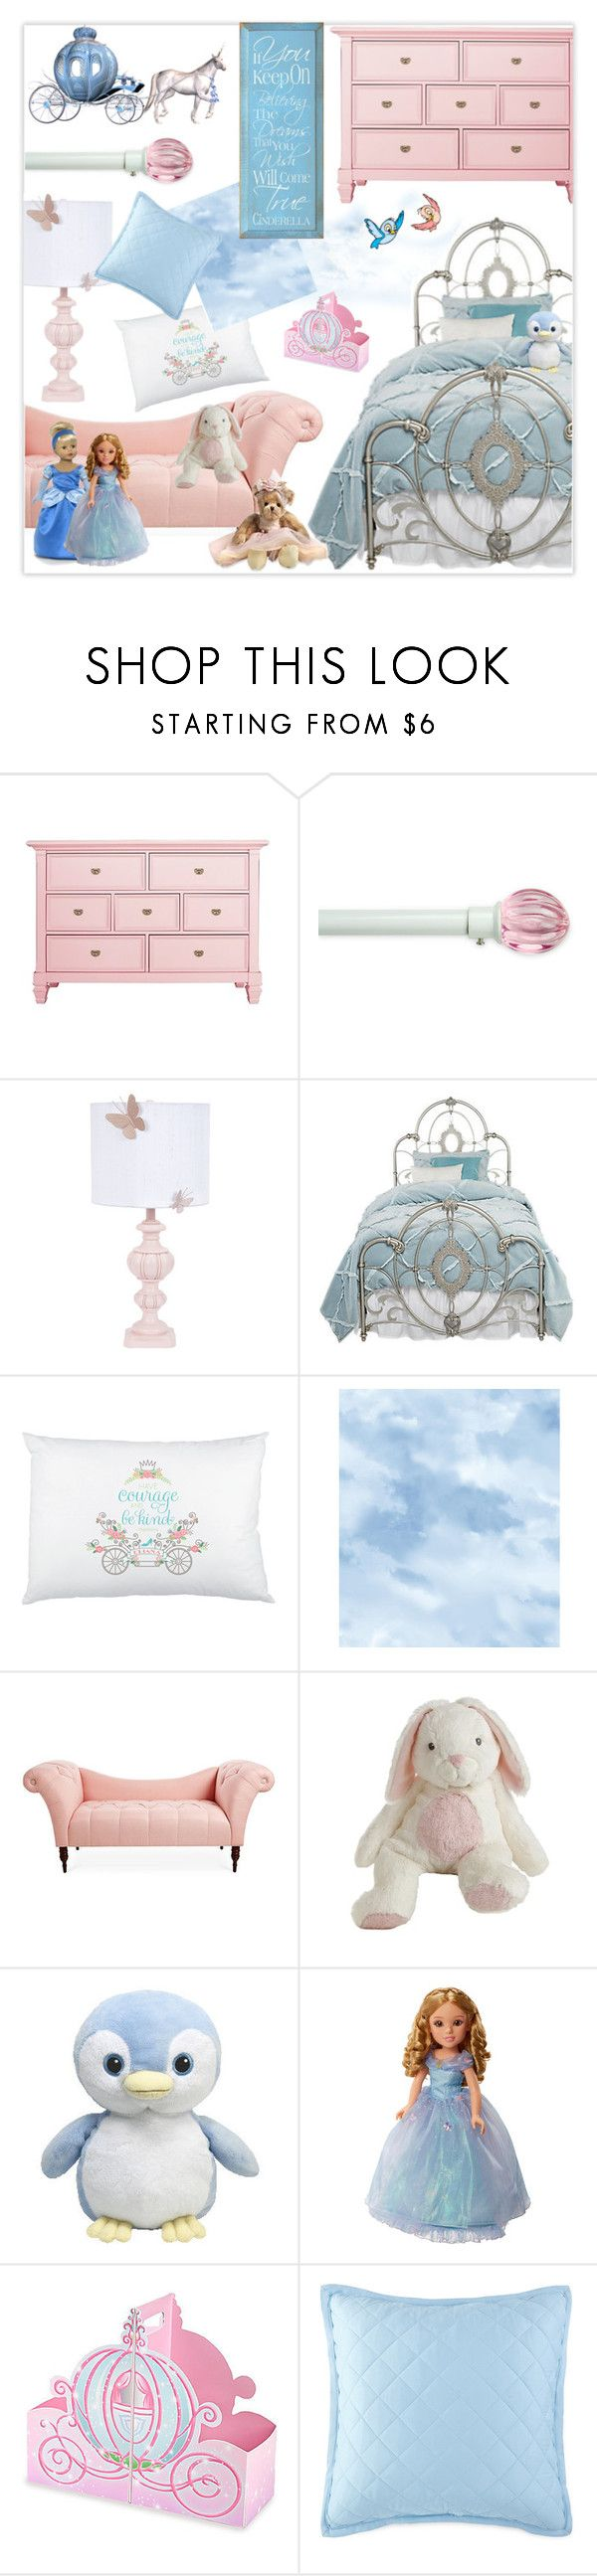 """Serenity & Rose Quartz Cinderella Bedroom"" by nancyreo ❤ liked on Polyvore featuring interior, interiors, interior design, home, home decor, interior decorating, Arlo Blinds, Disney, York Wallcoverings and bedroom"